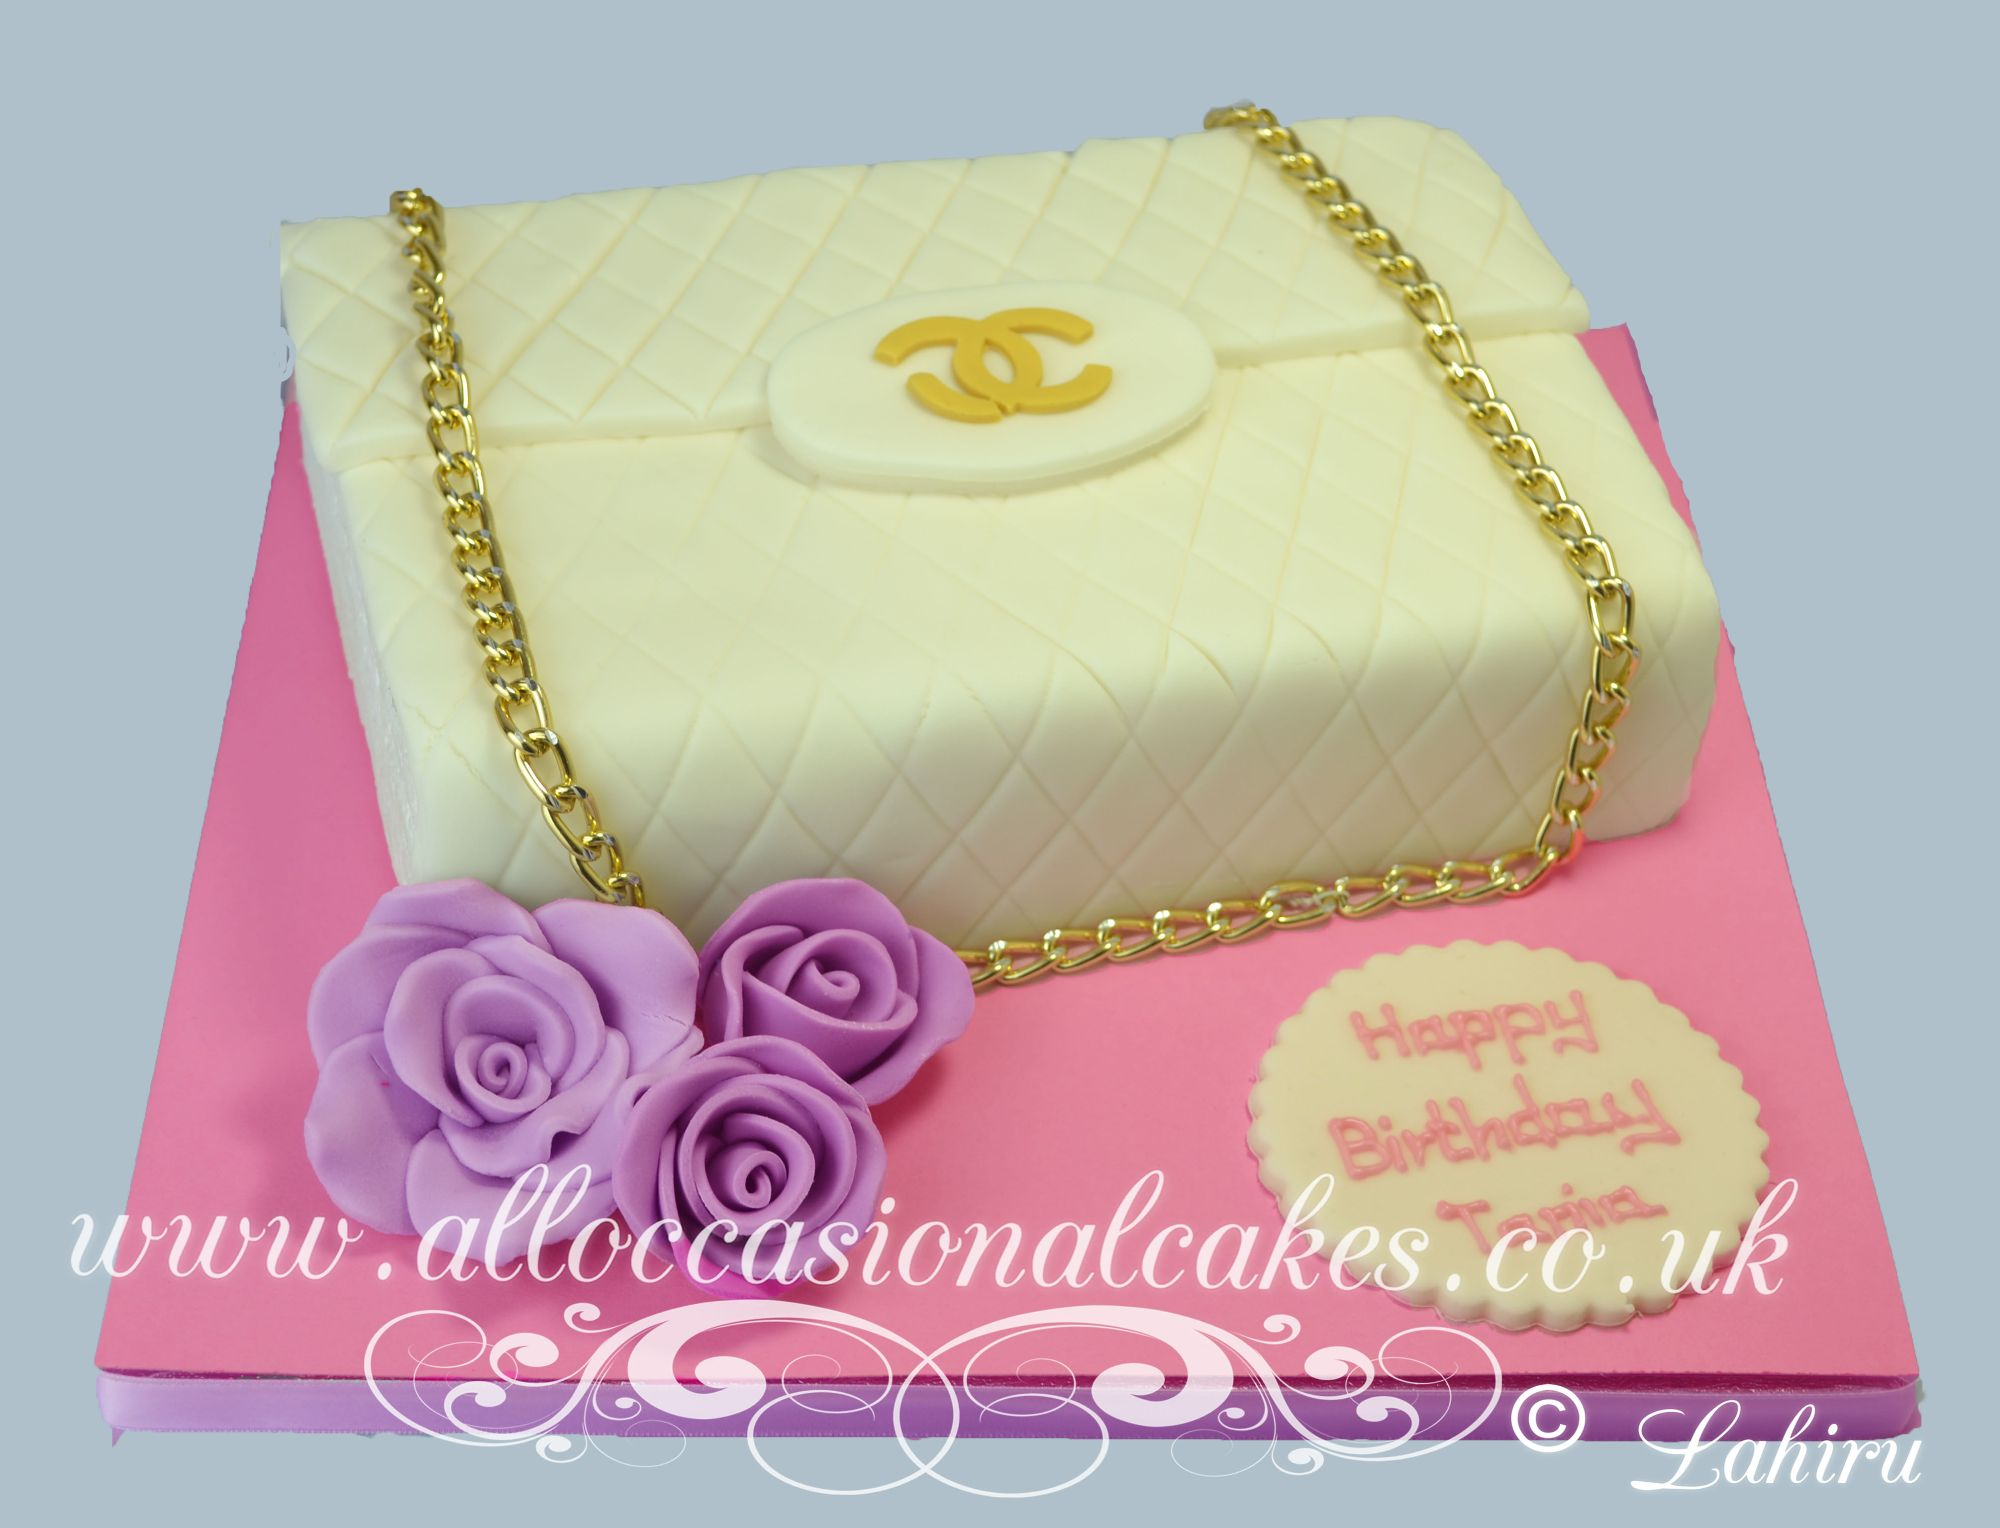 chanel handbags birthday cake